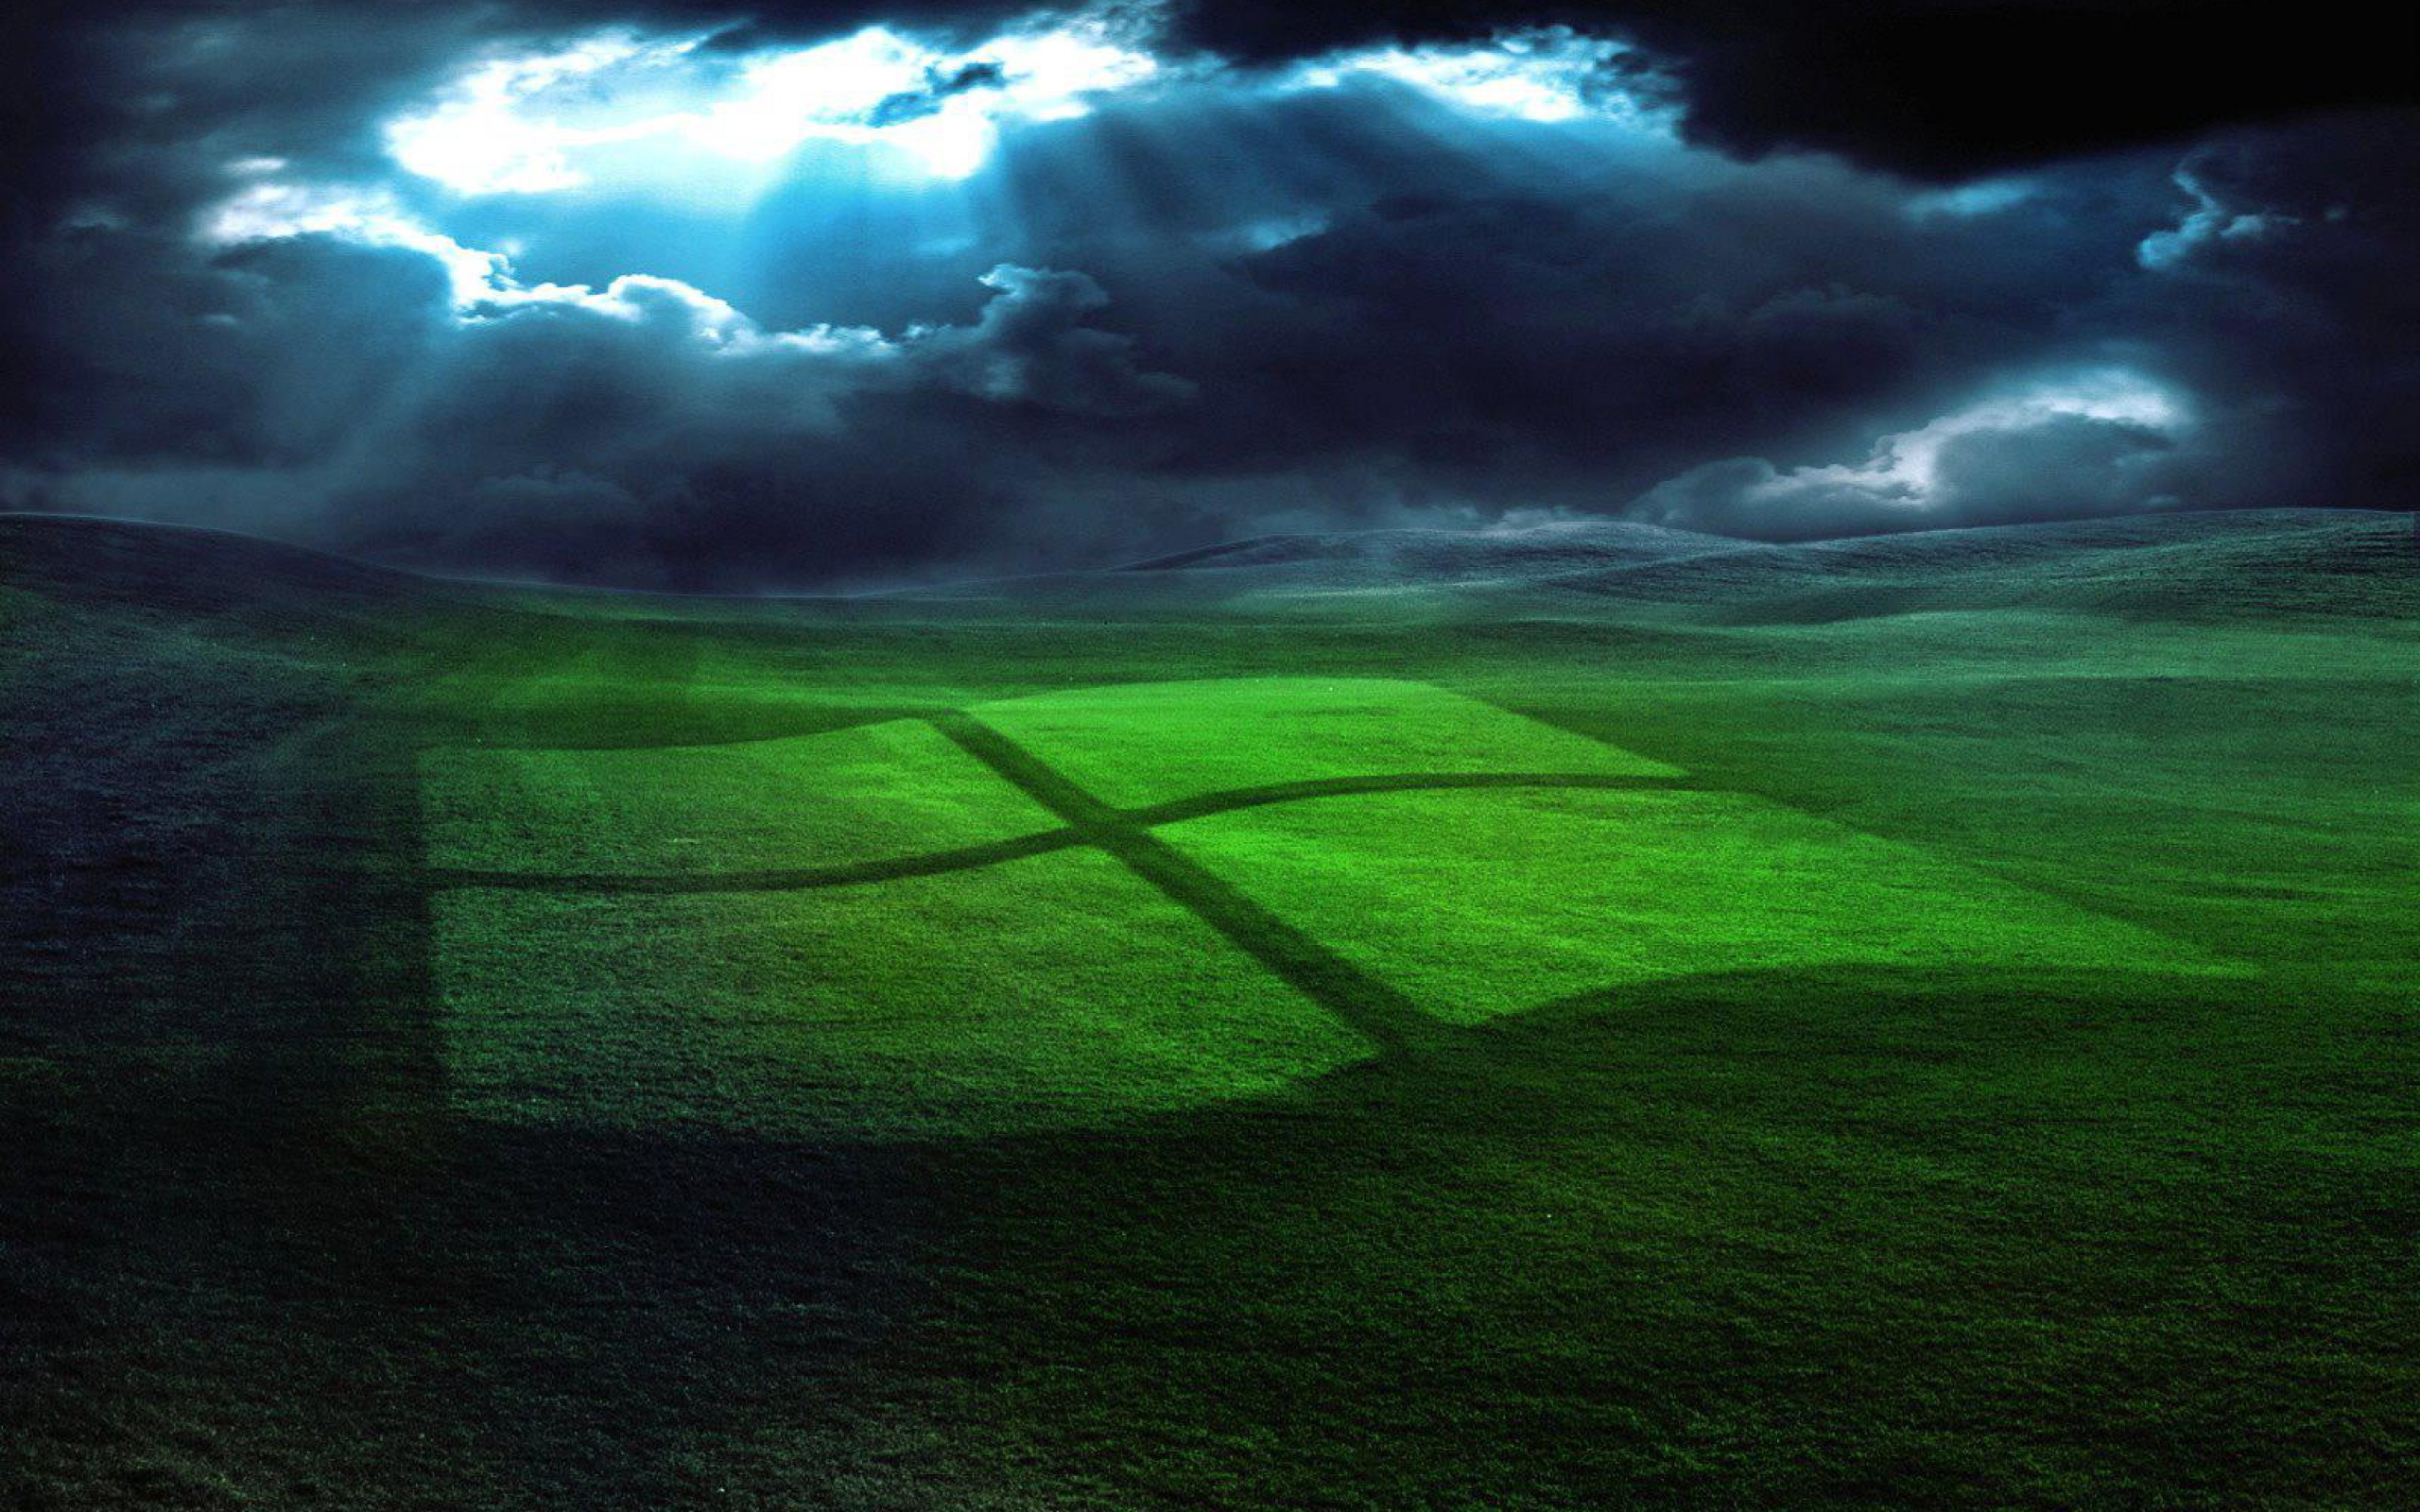 Related Wallpaper : Photo Manipulation Windows Wallpaper